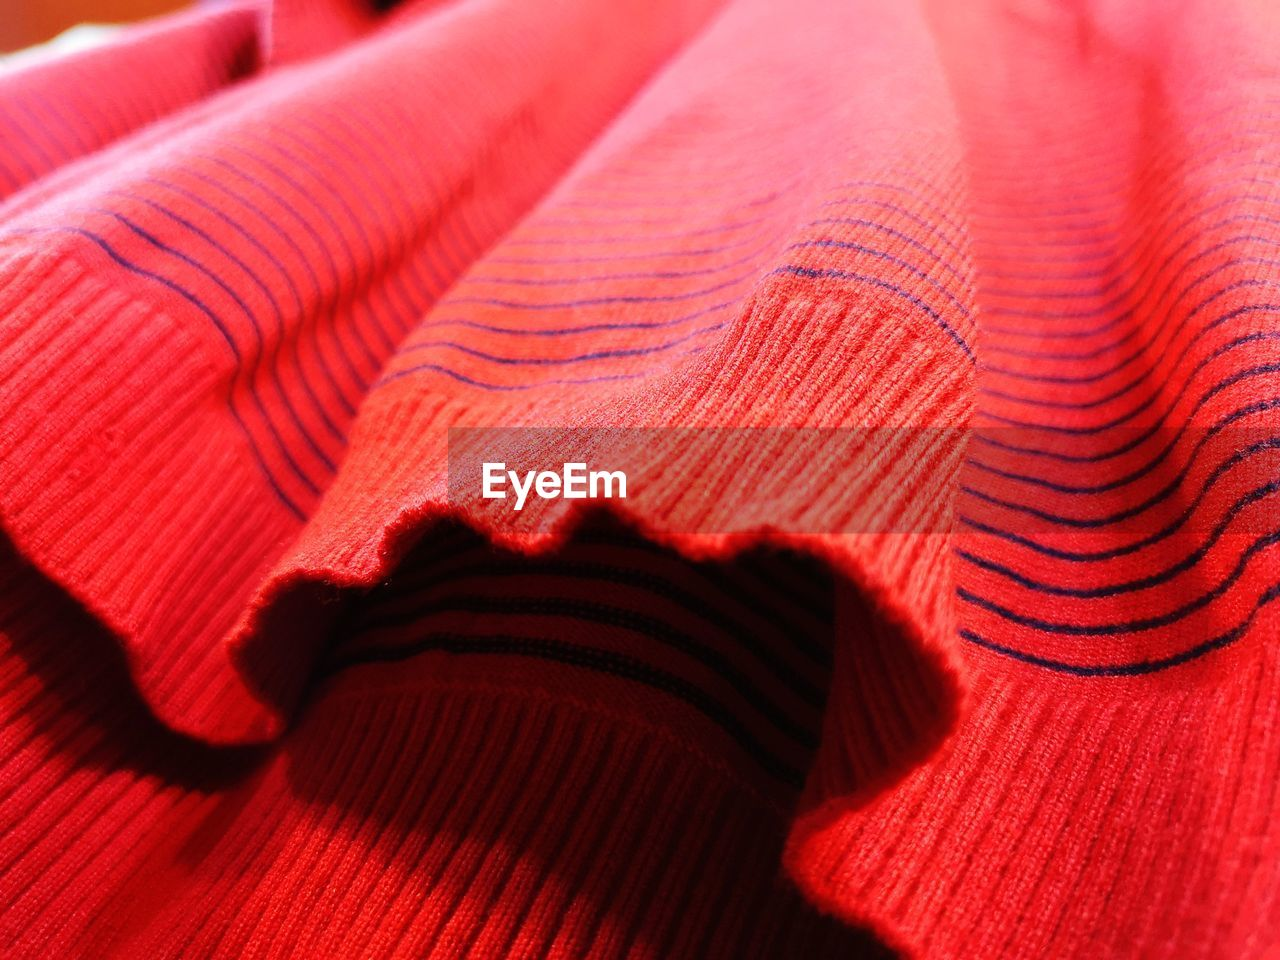 textile, indoors, red, close-up, no people, pattern, shadow, still life, backgrounds, wool, single object, full frame, sunlight, textured, selective focus, material, furniture, man made object, man made, paper